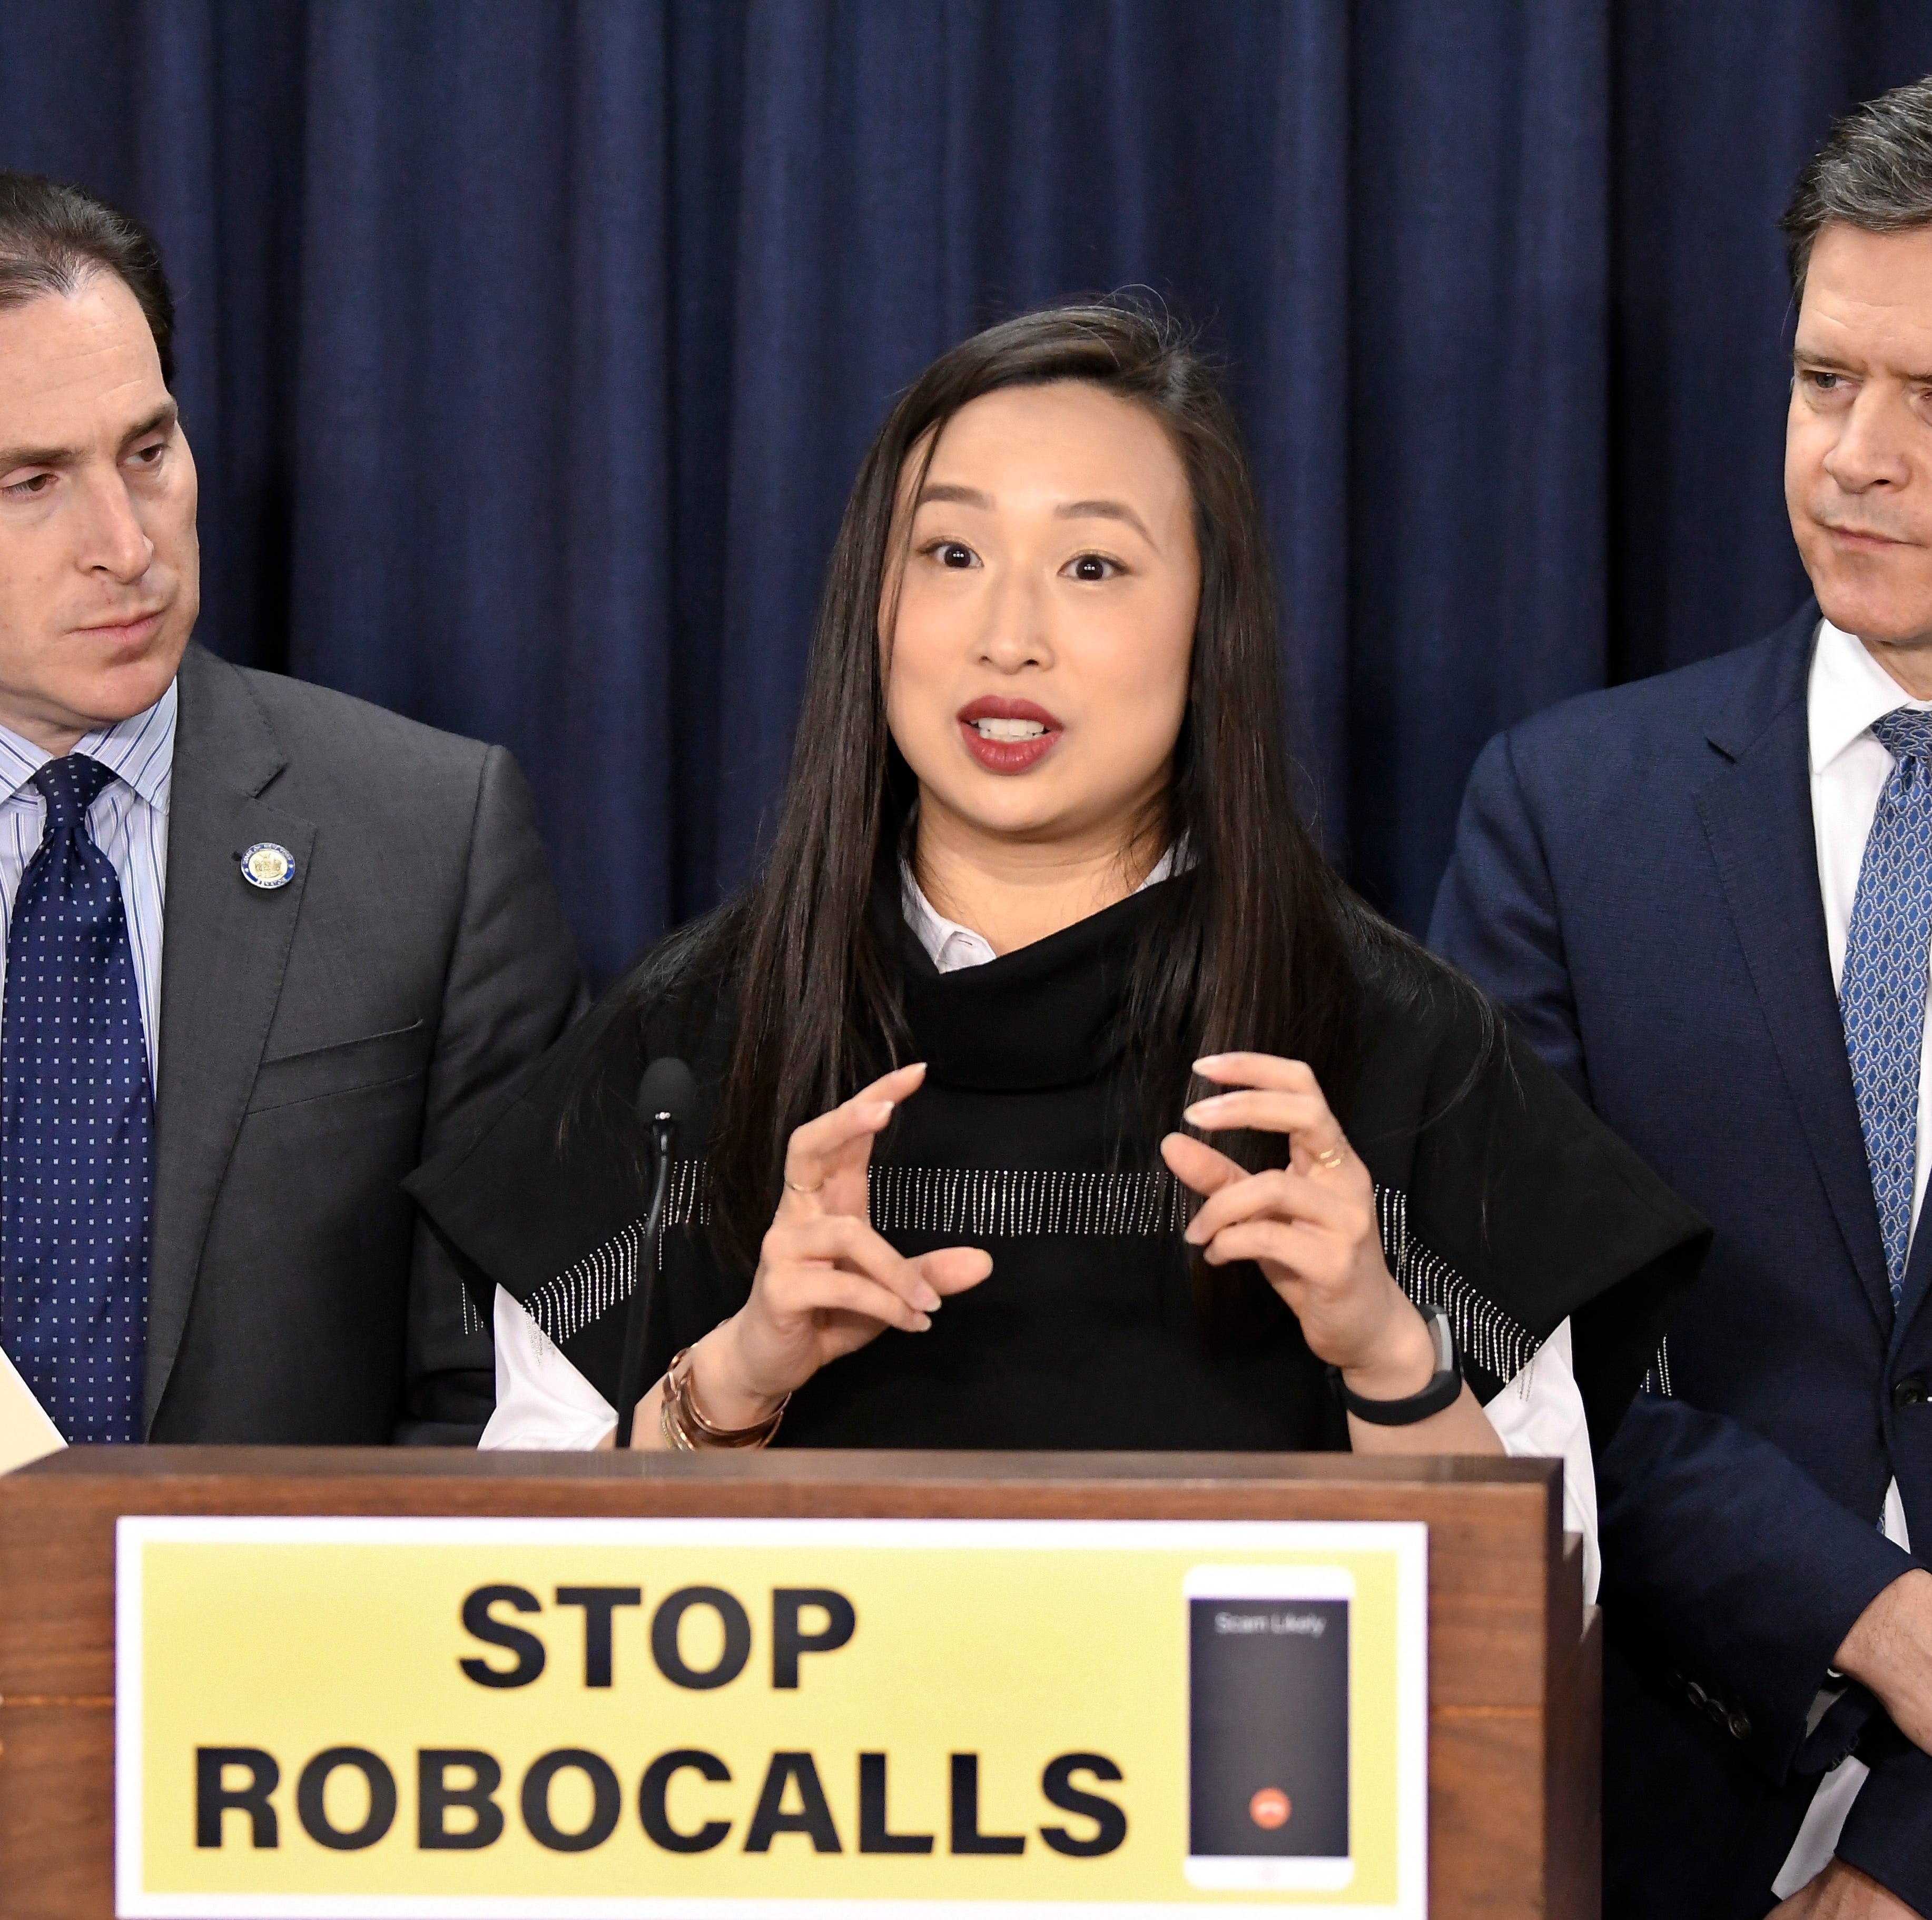 Robocalls: How New York wants to ban them once and for all